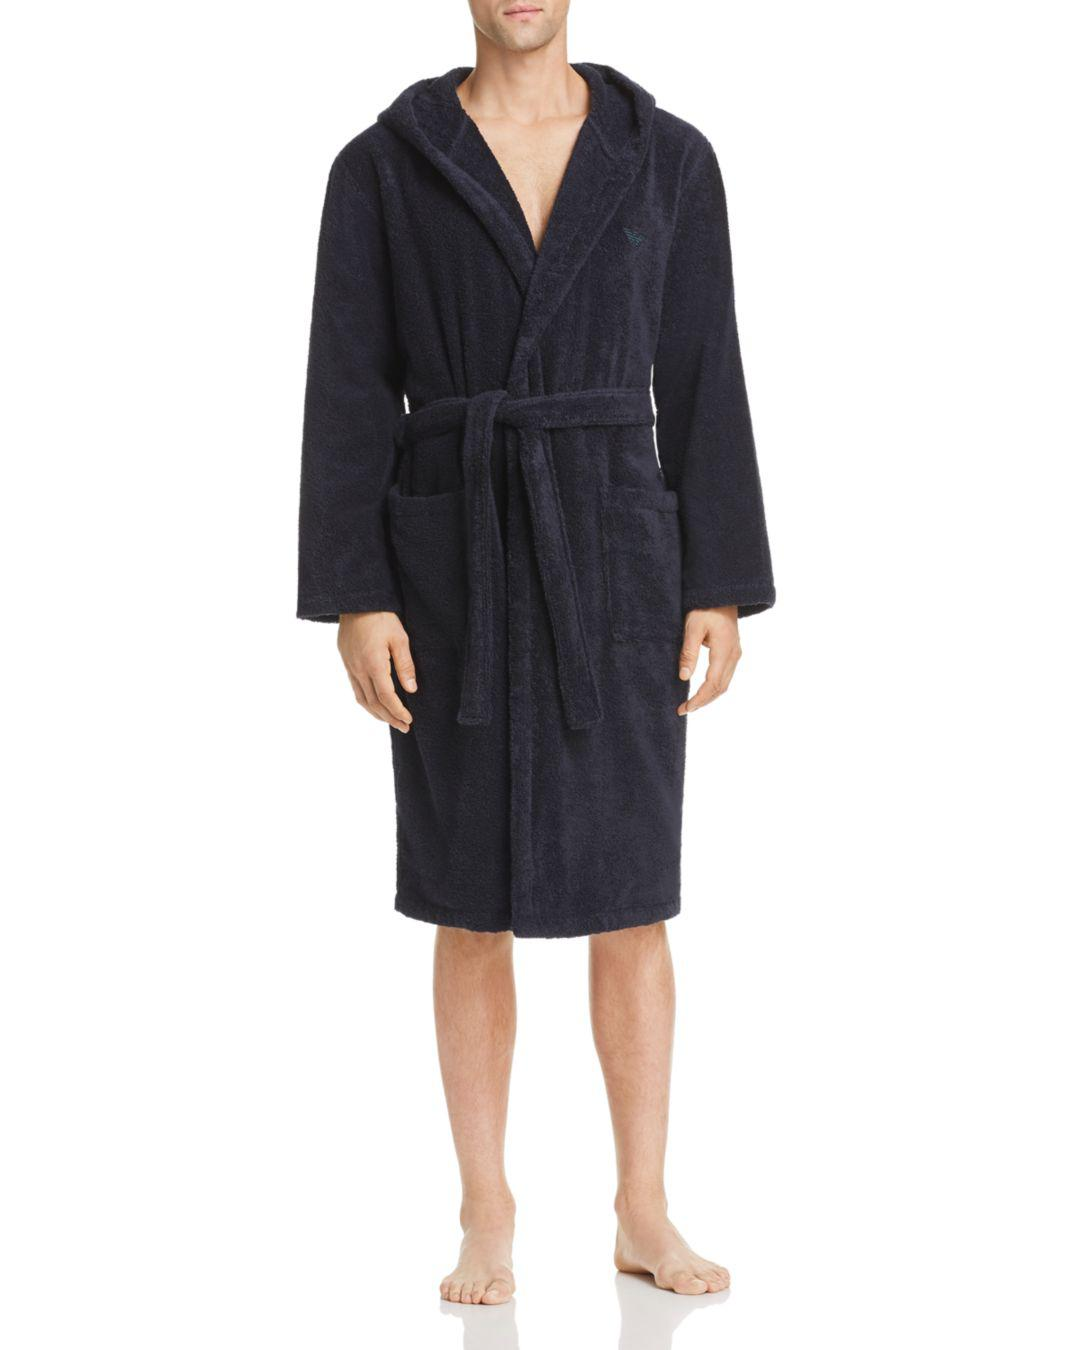 1dcae489c1 Lyst - Emporio Armani Plush Bathrobe in Blue for Men